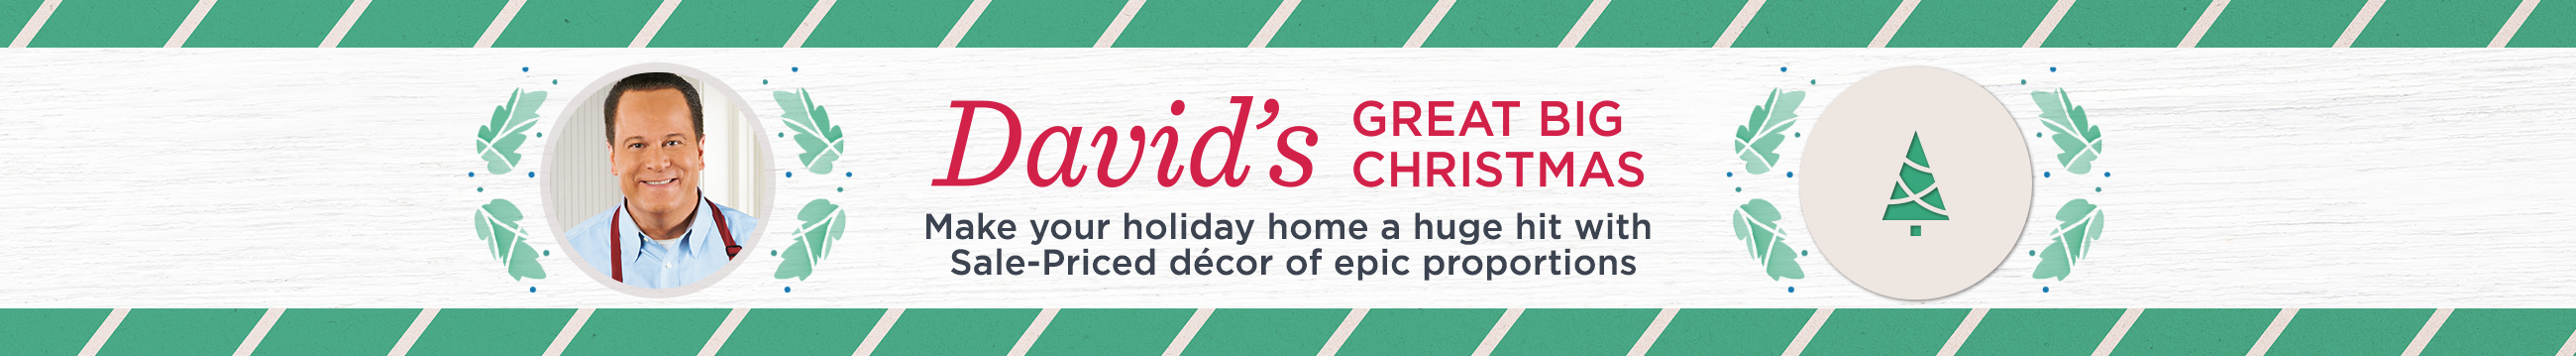 David's Great Big Christmas. Make your holiday home a huge hit with Sale-Priced décor of epic proportions